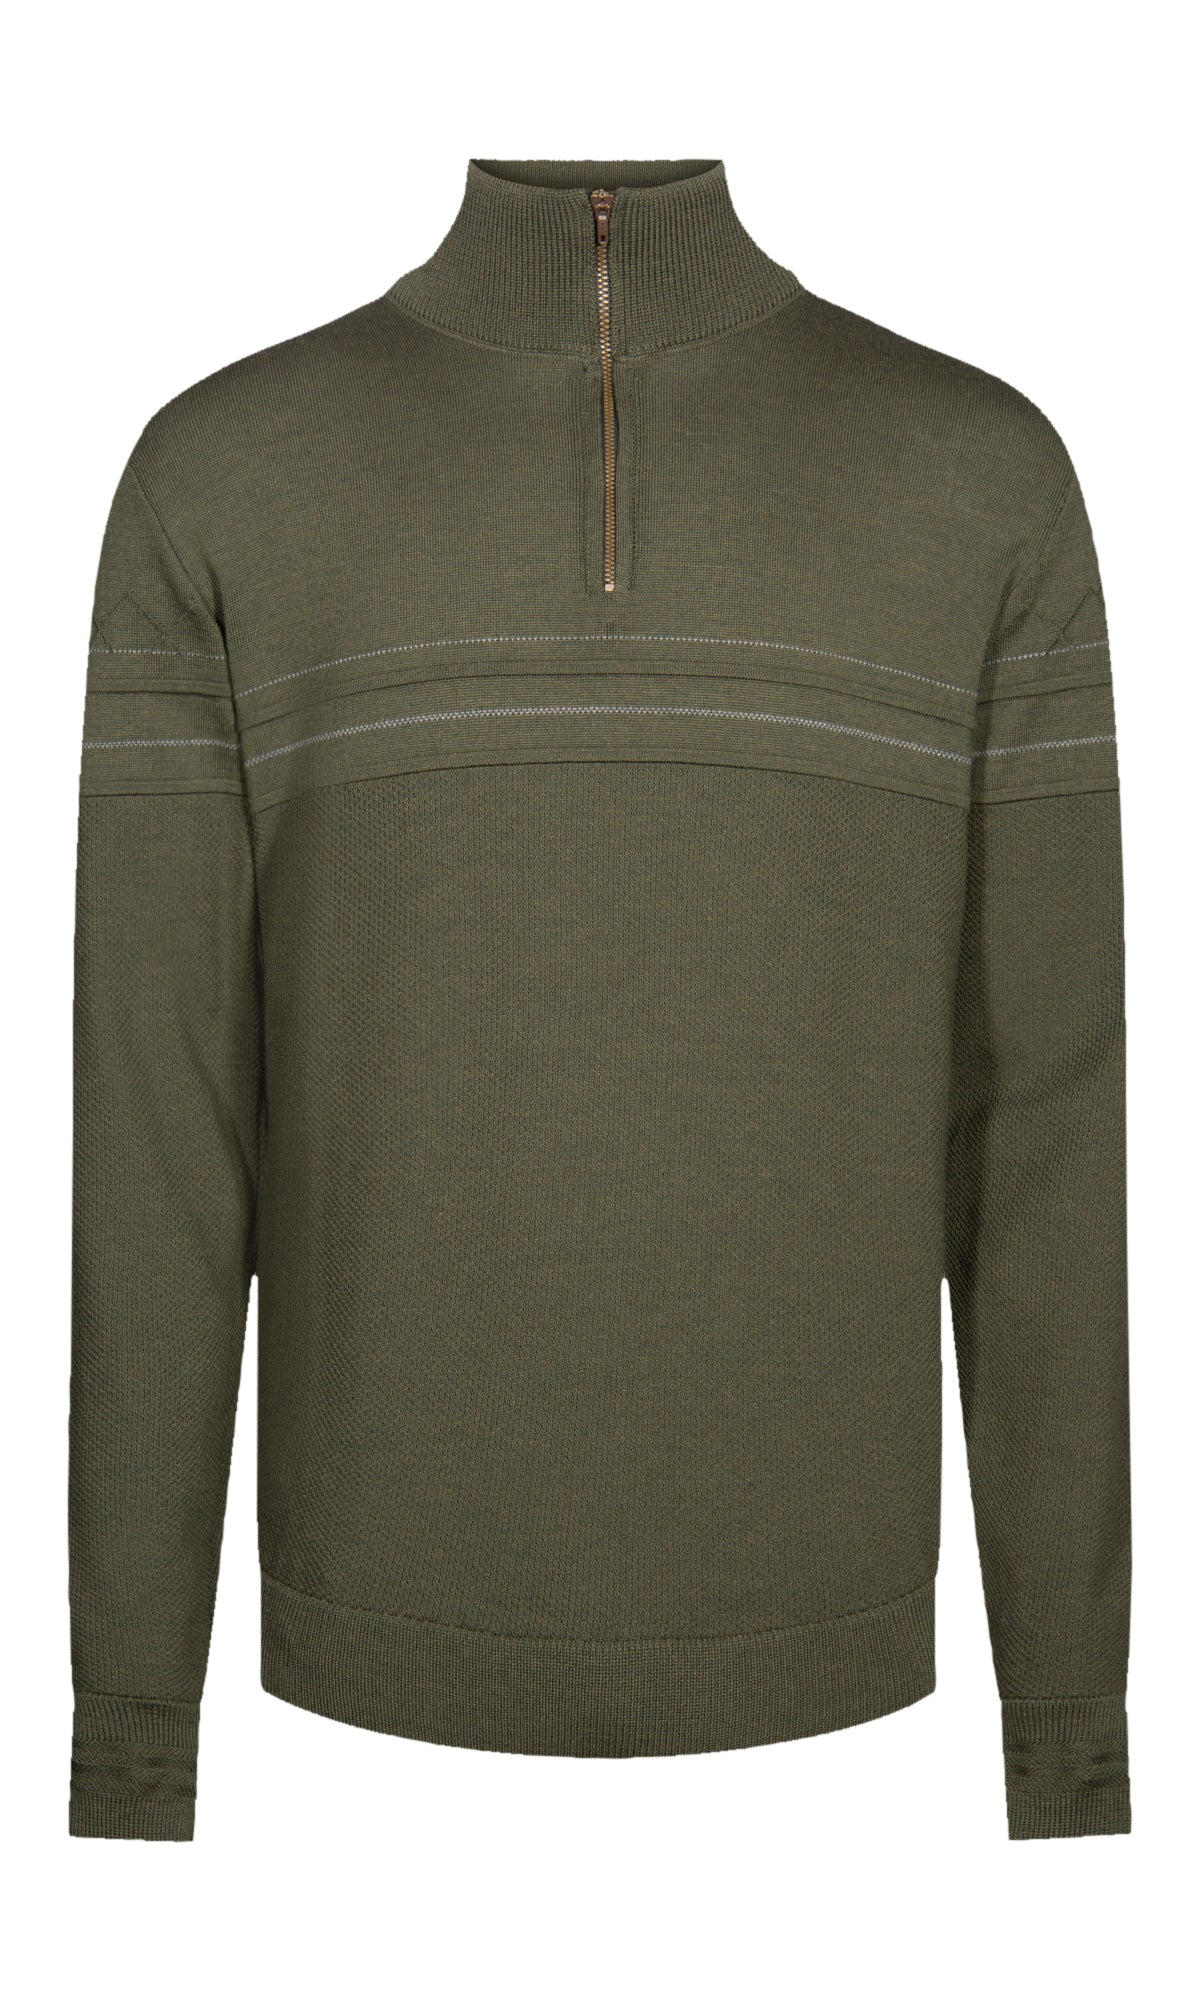 Dale of Norway - Syv Fjell Men's half zip Sweater - Green